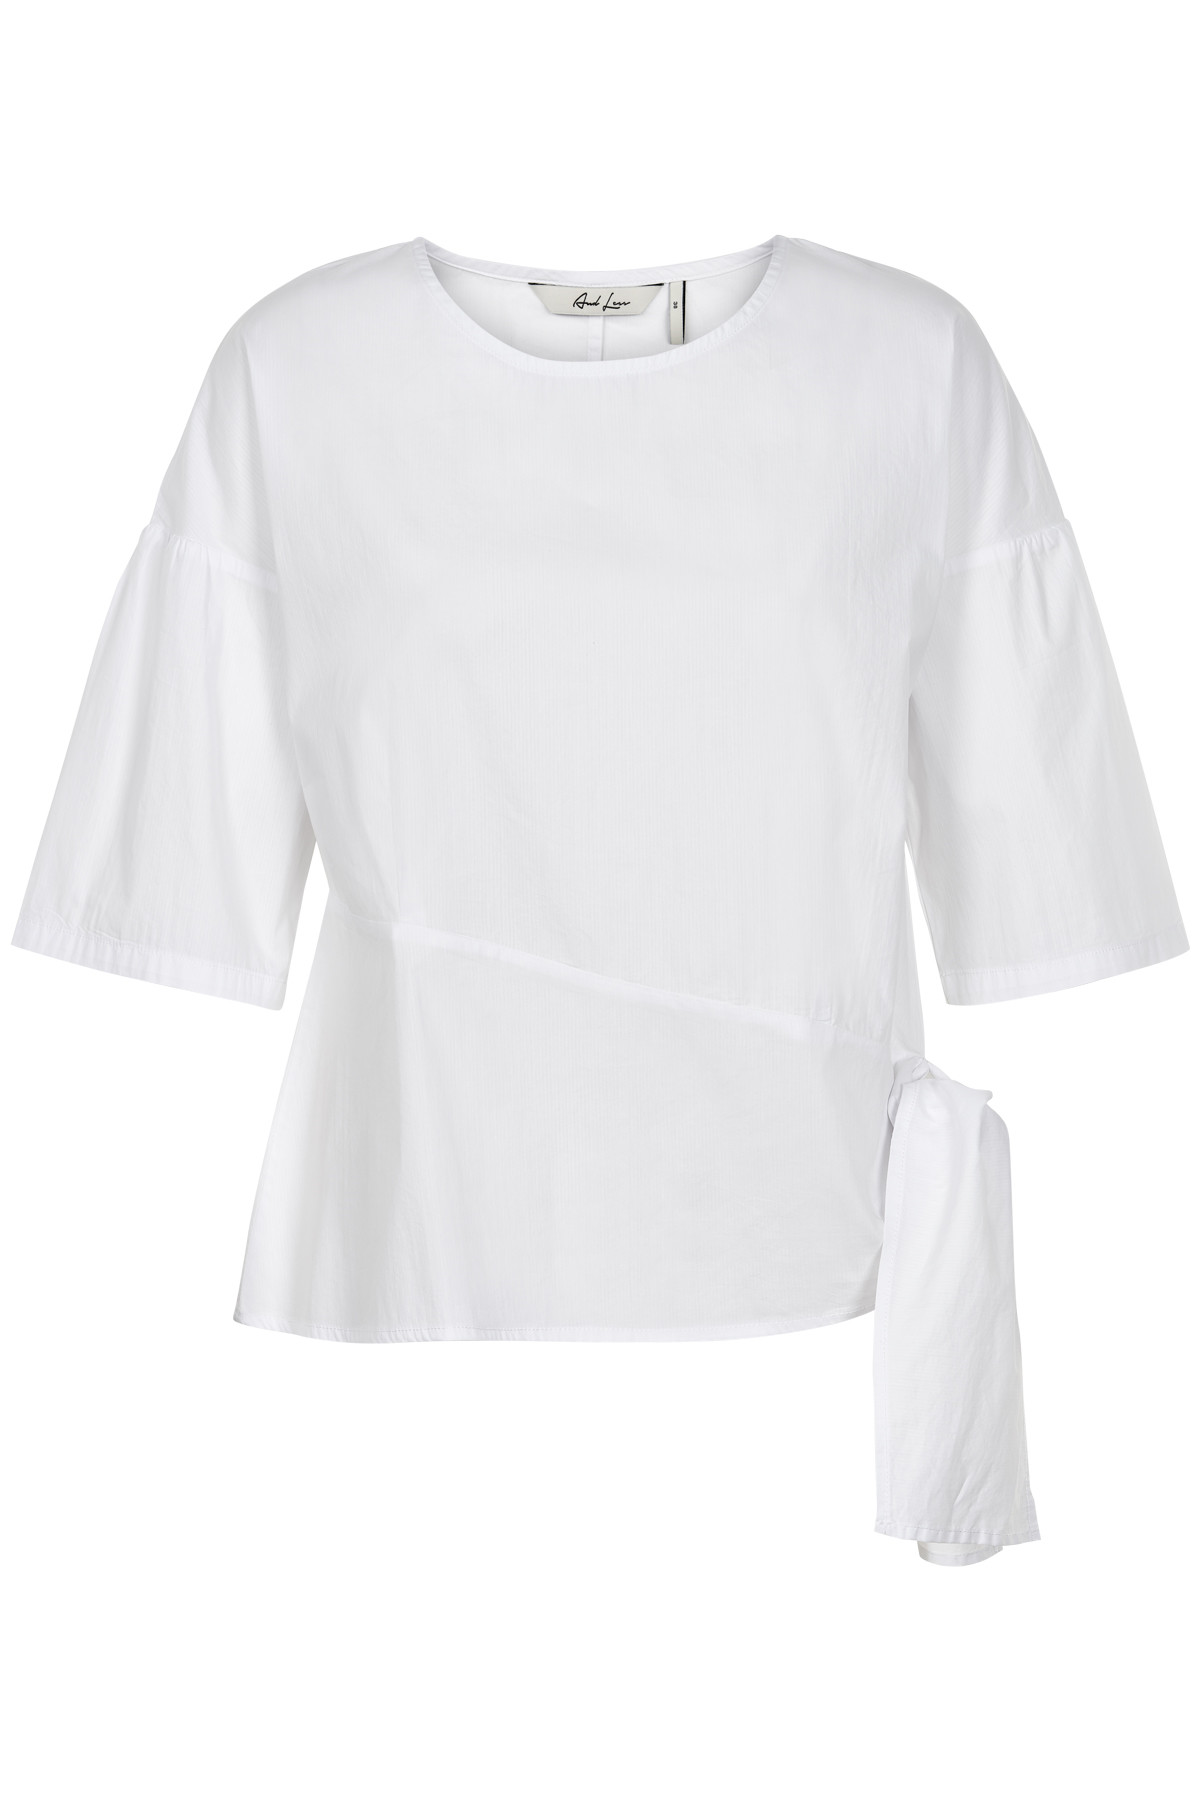 Image of   AND LESS LOREANE BLUSE 5119005 (Brilliant White, 36)